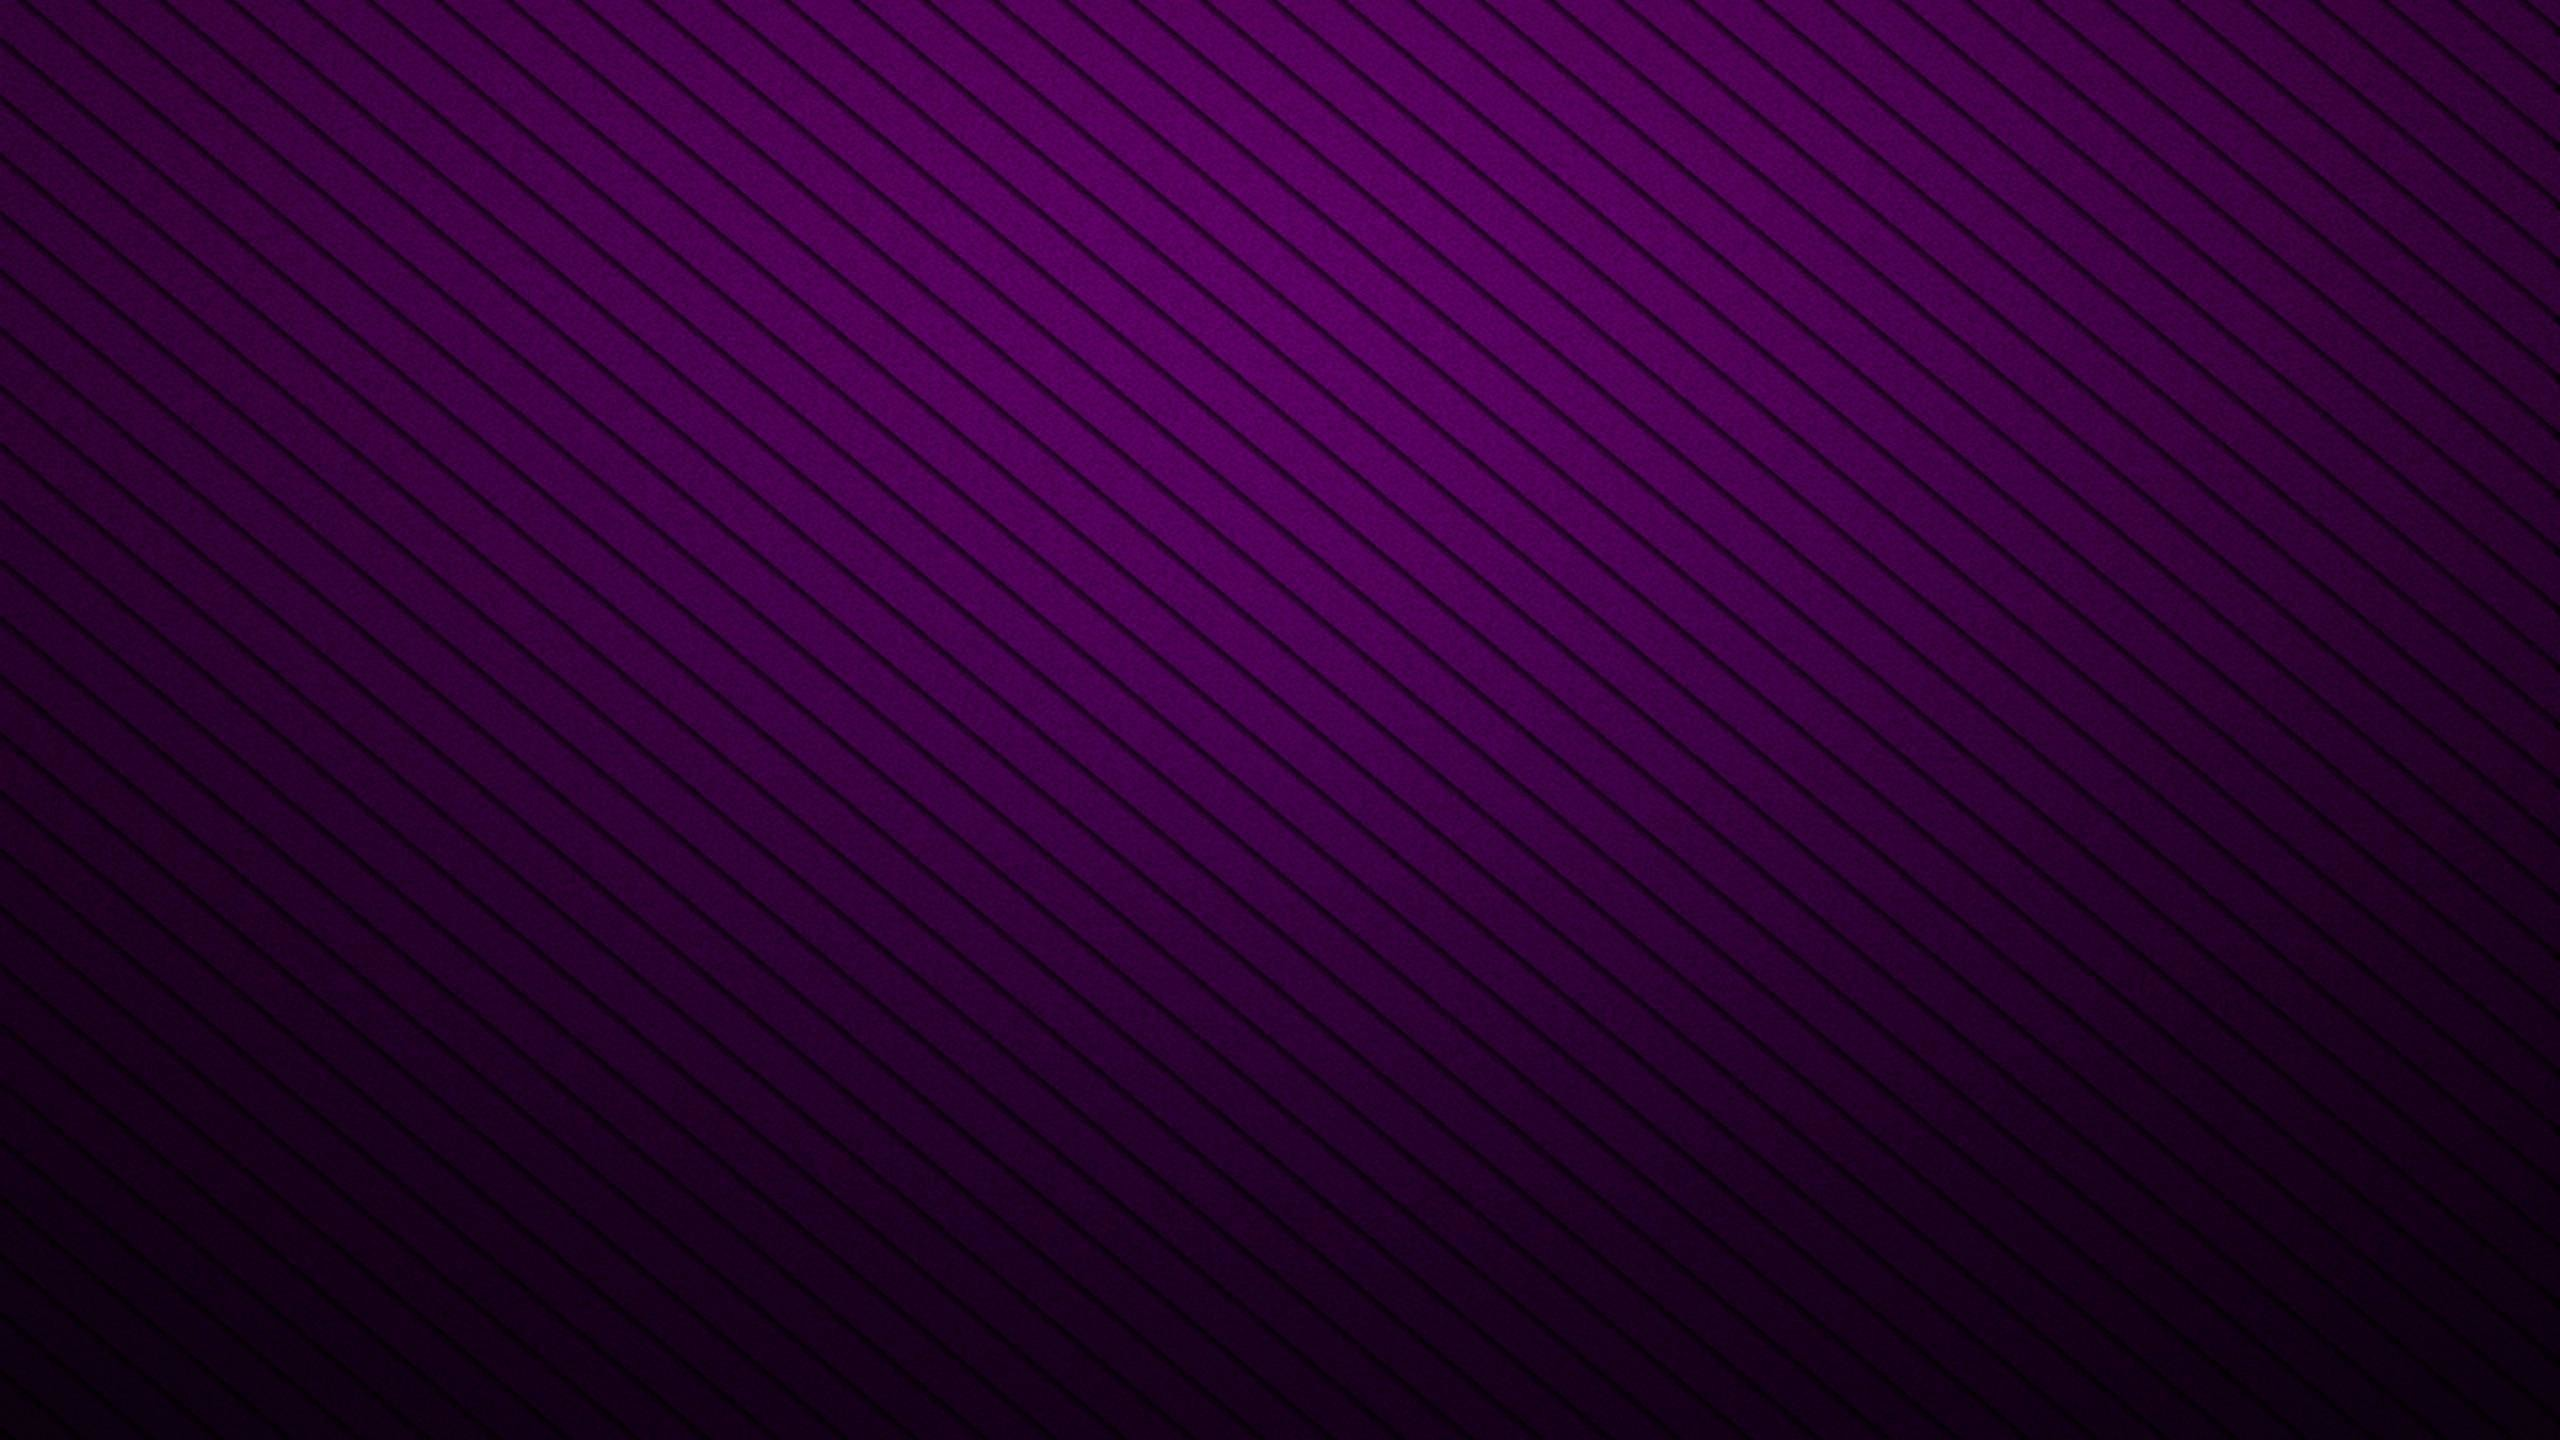 Purple and Black Wallpaper (75+ images